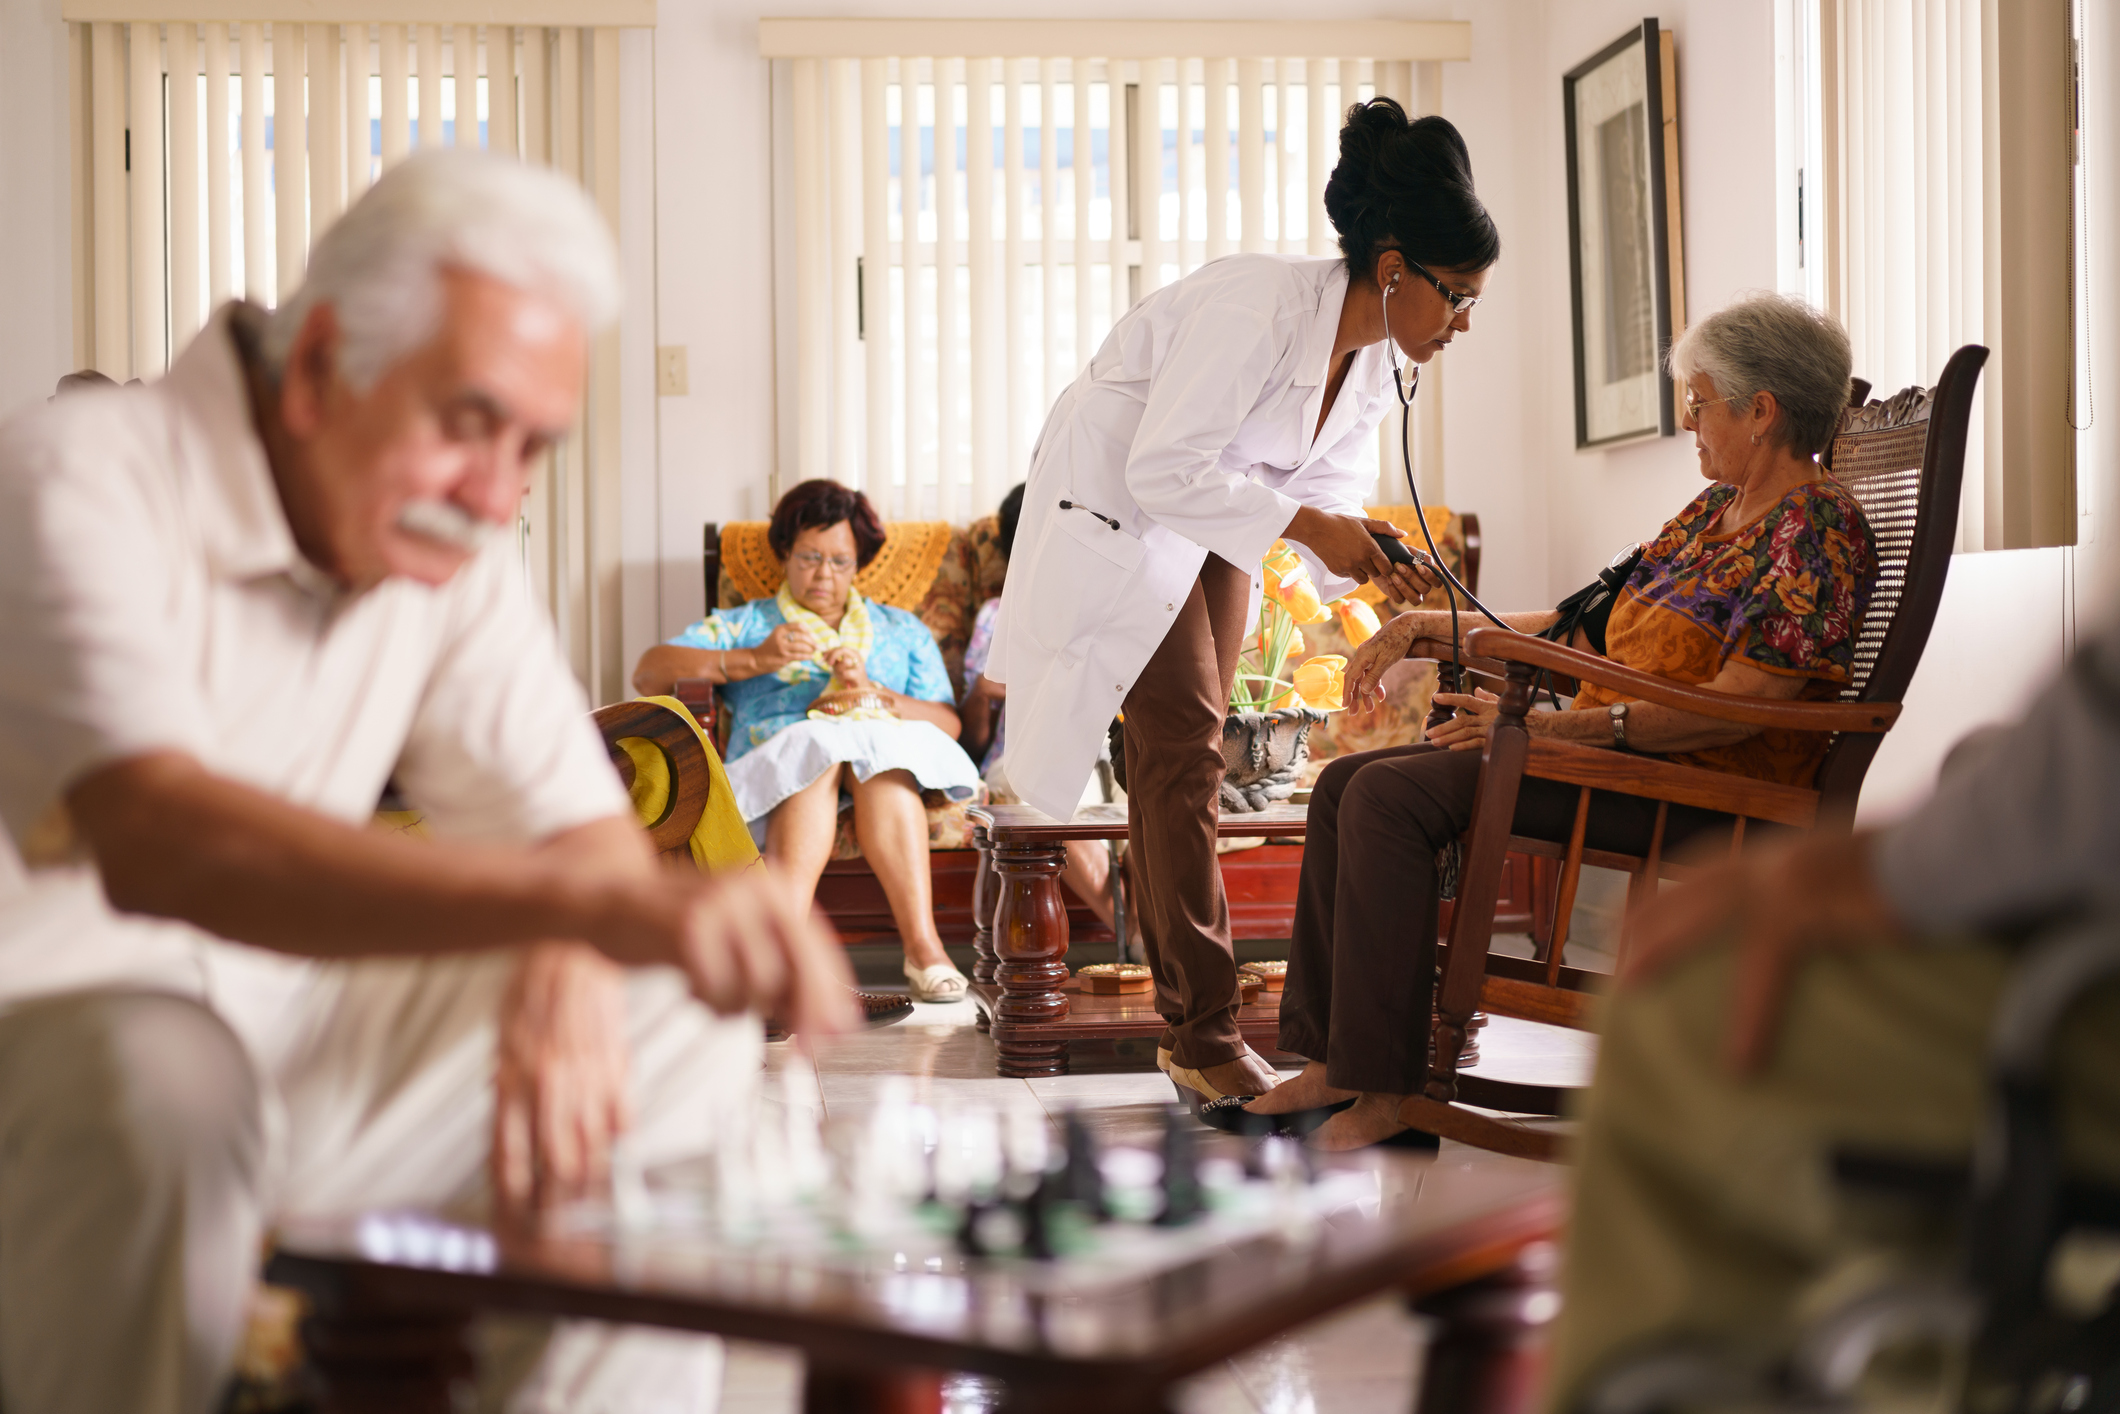 Our Practice - Our network clinicians specialize in gerontology and have a passion for delivering compassionate care .